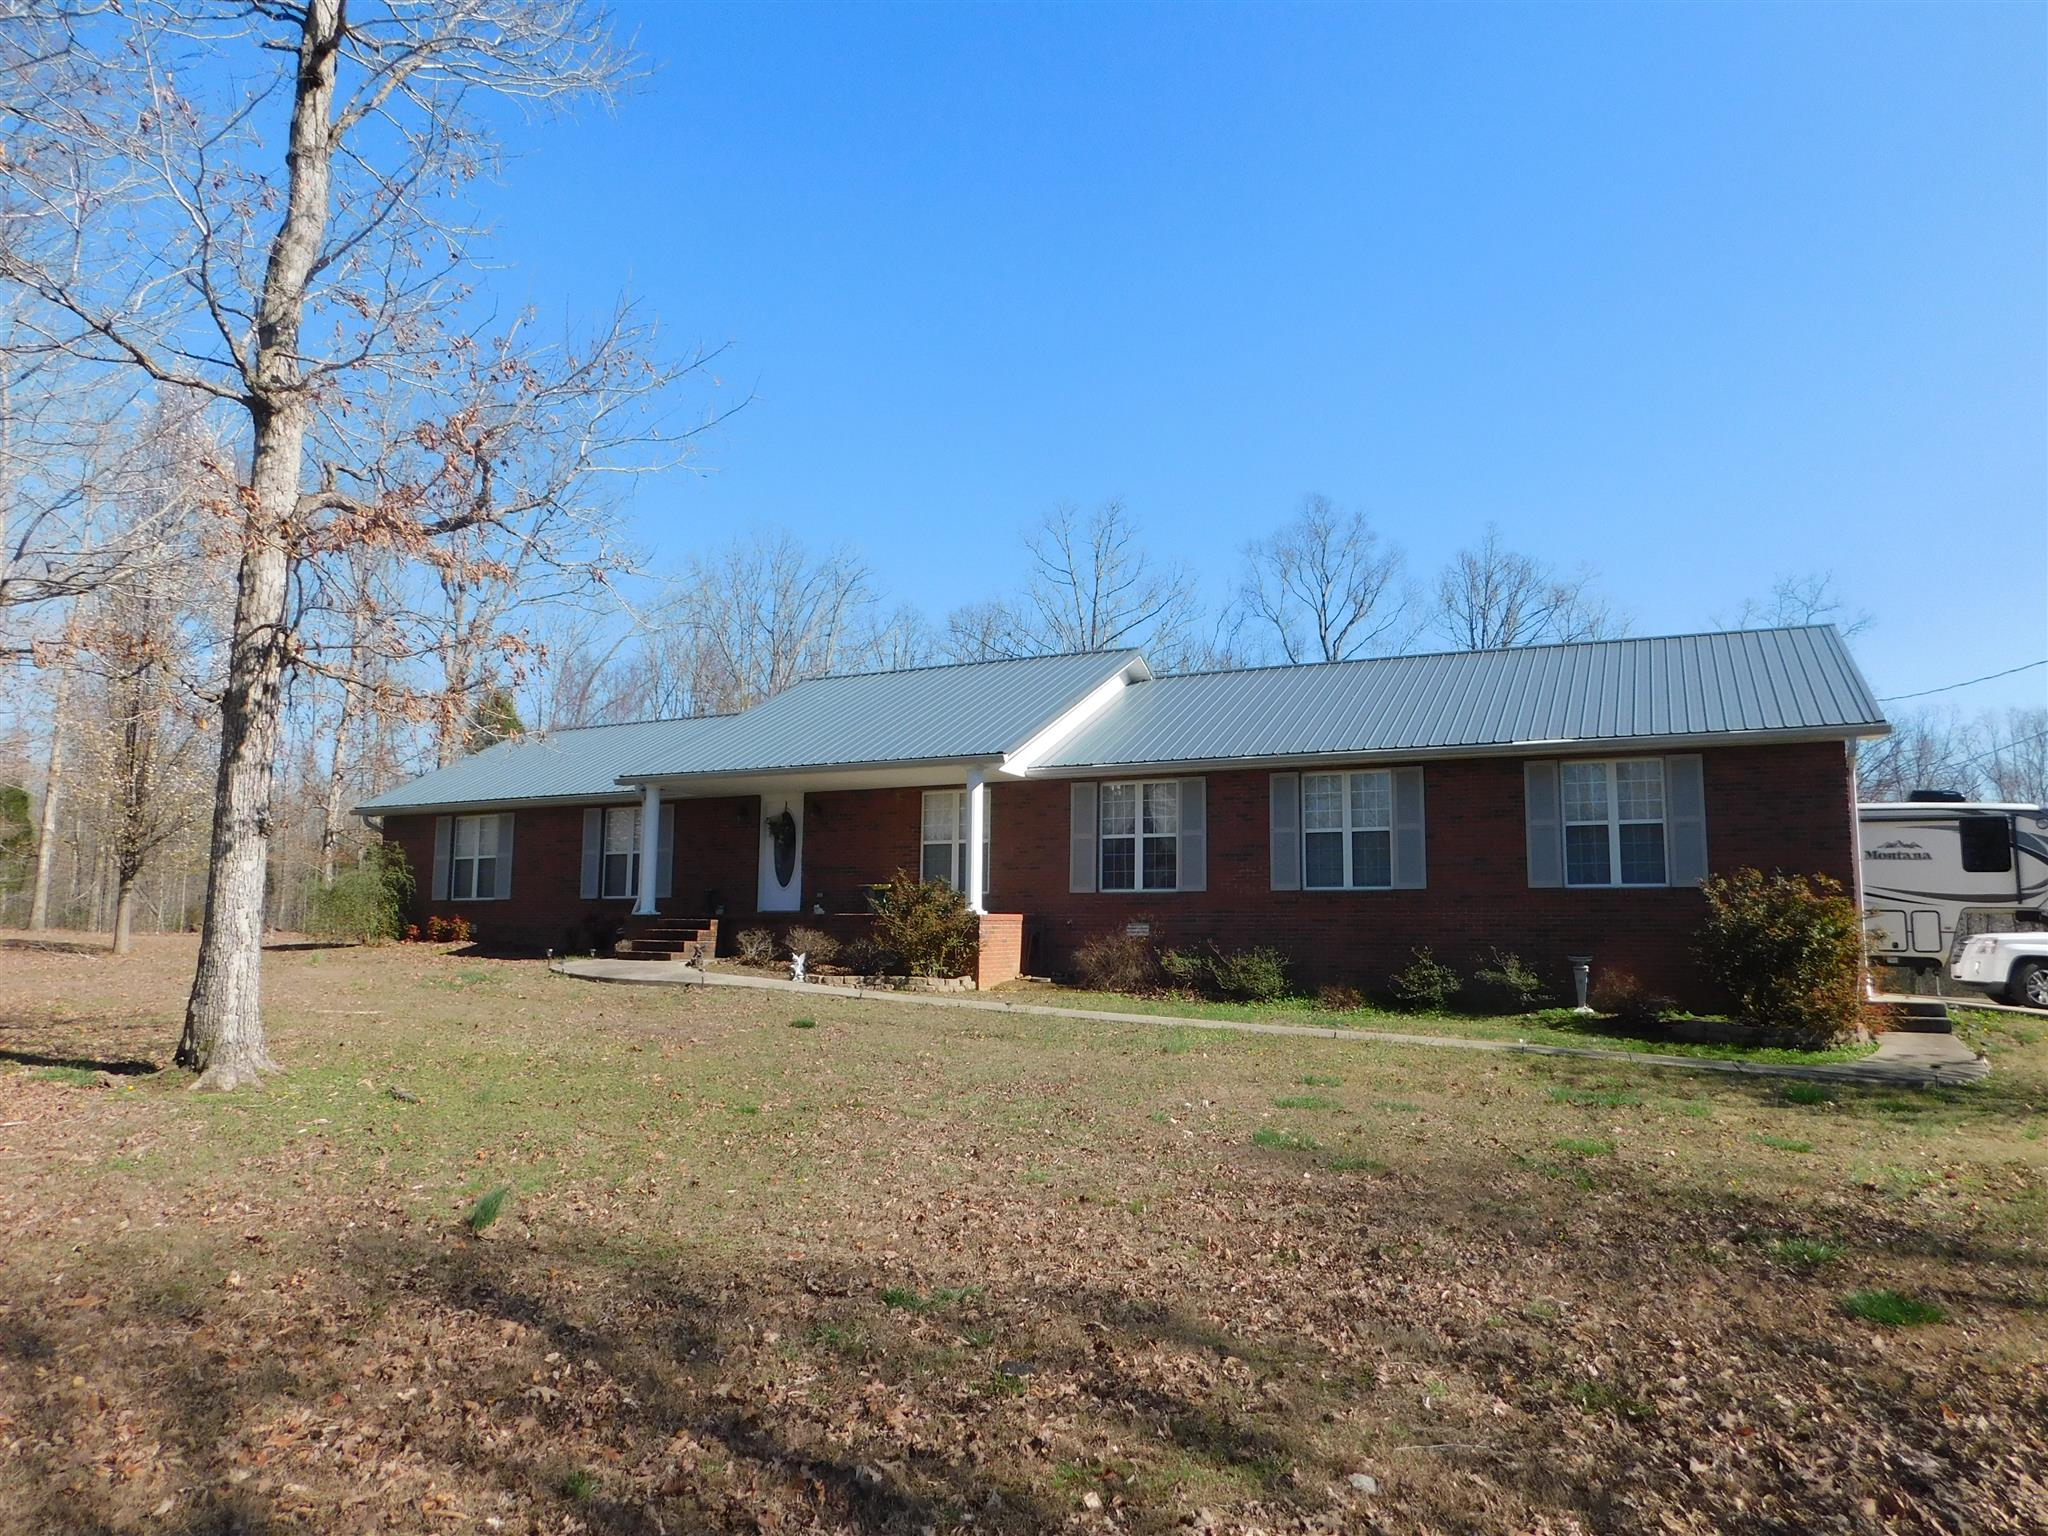 624 Blue Heron Dr, New Johnsonville, TN 37134